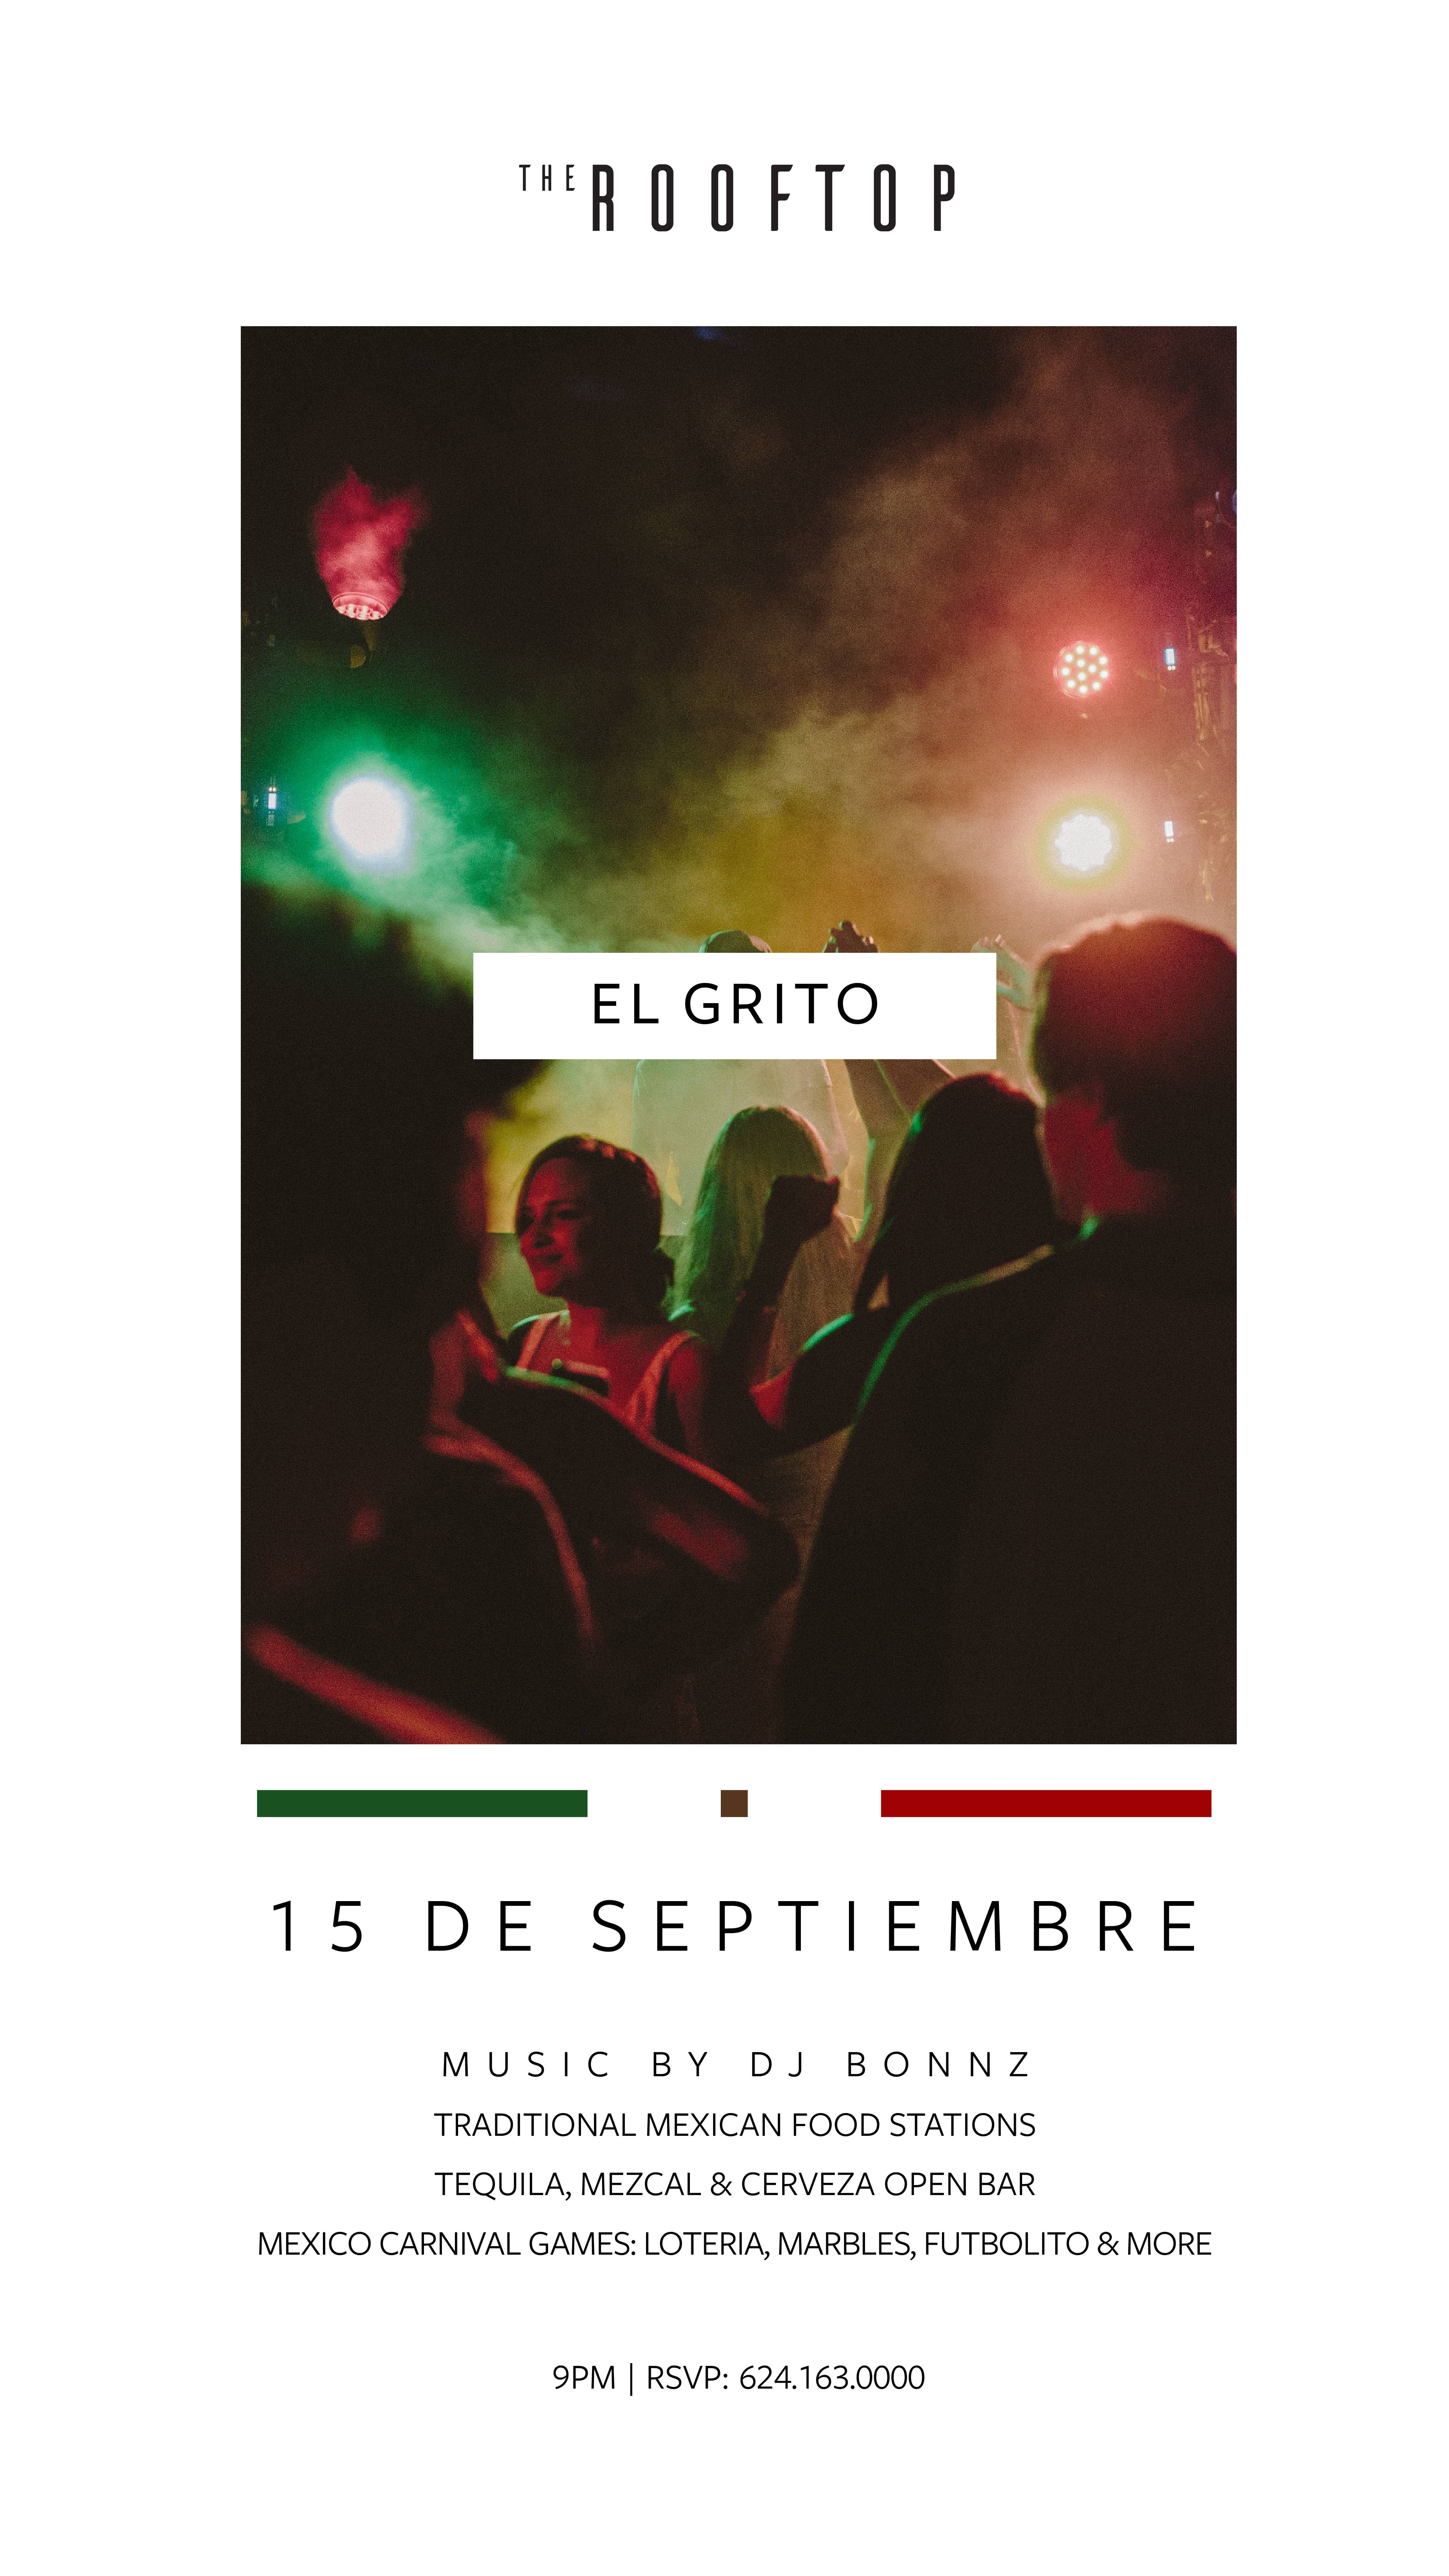 EL GRITO | THE ROOFTOP